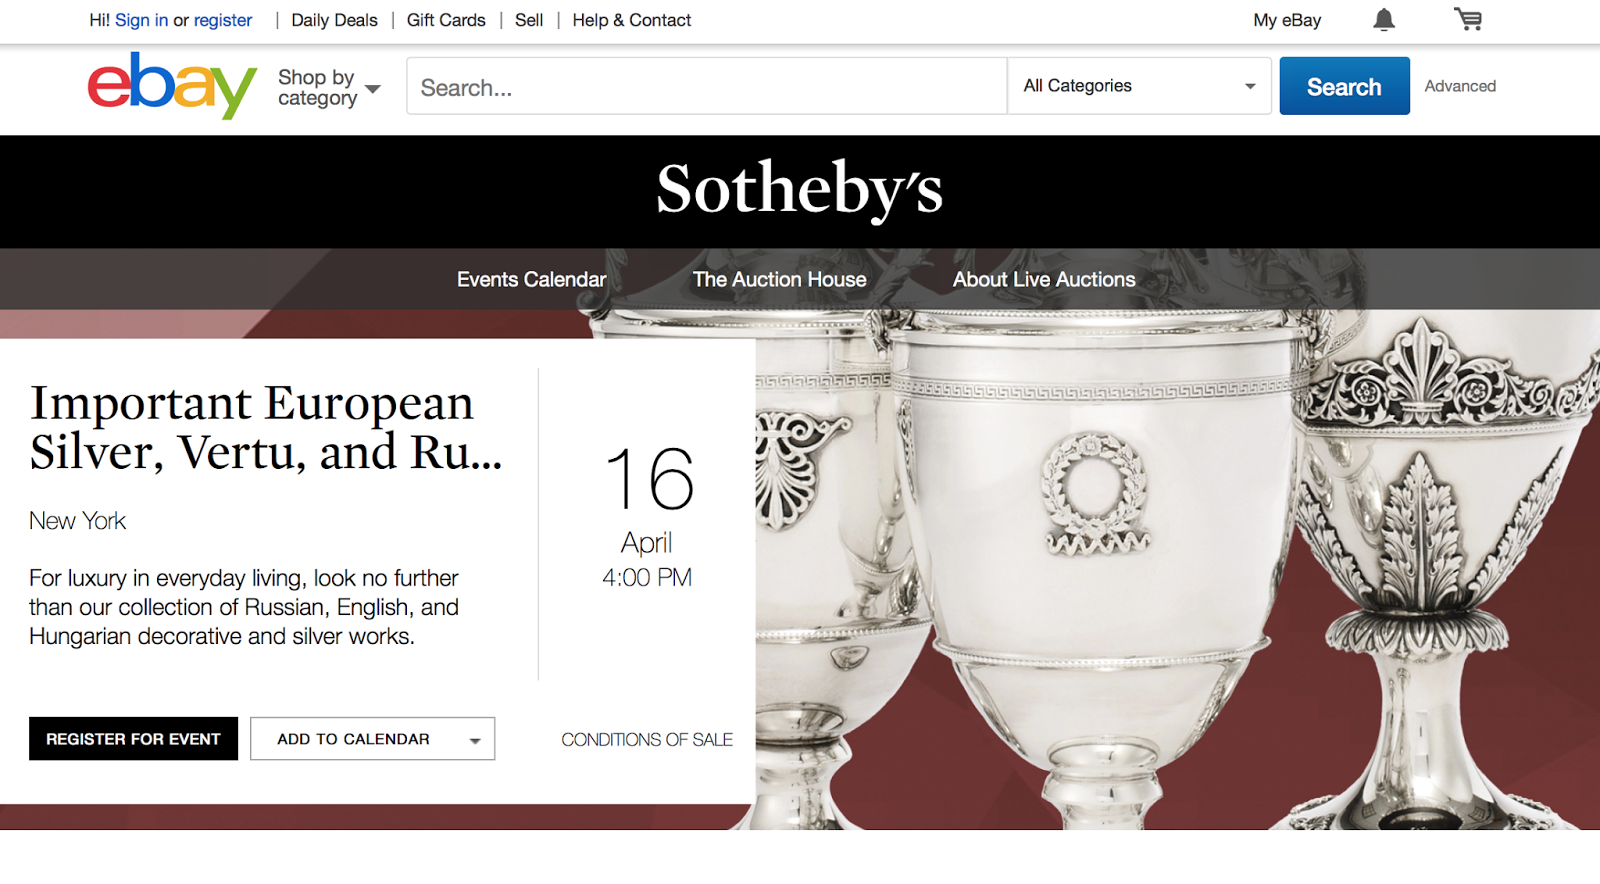 Auc The Art Market 2015 Sotheby S And Ebay S Partnership B2c Or B2b